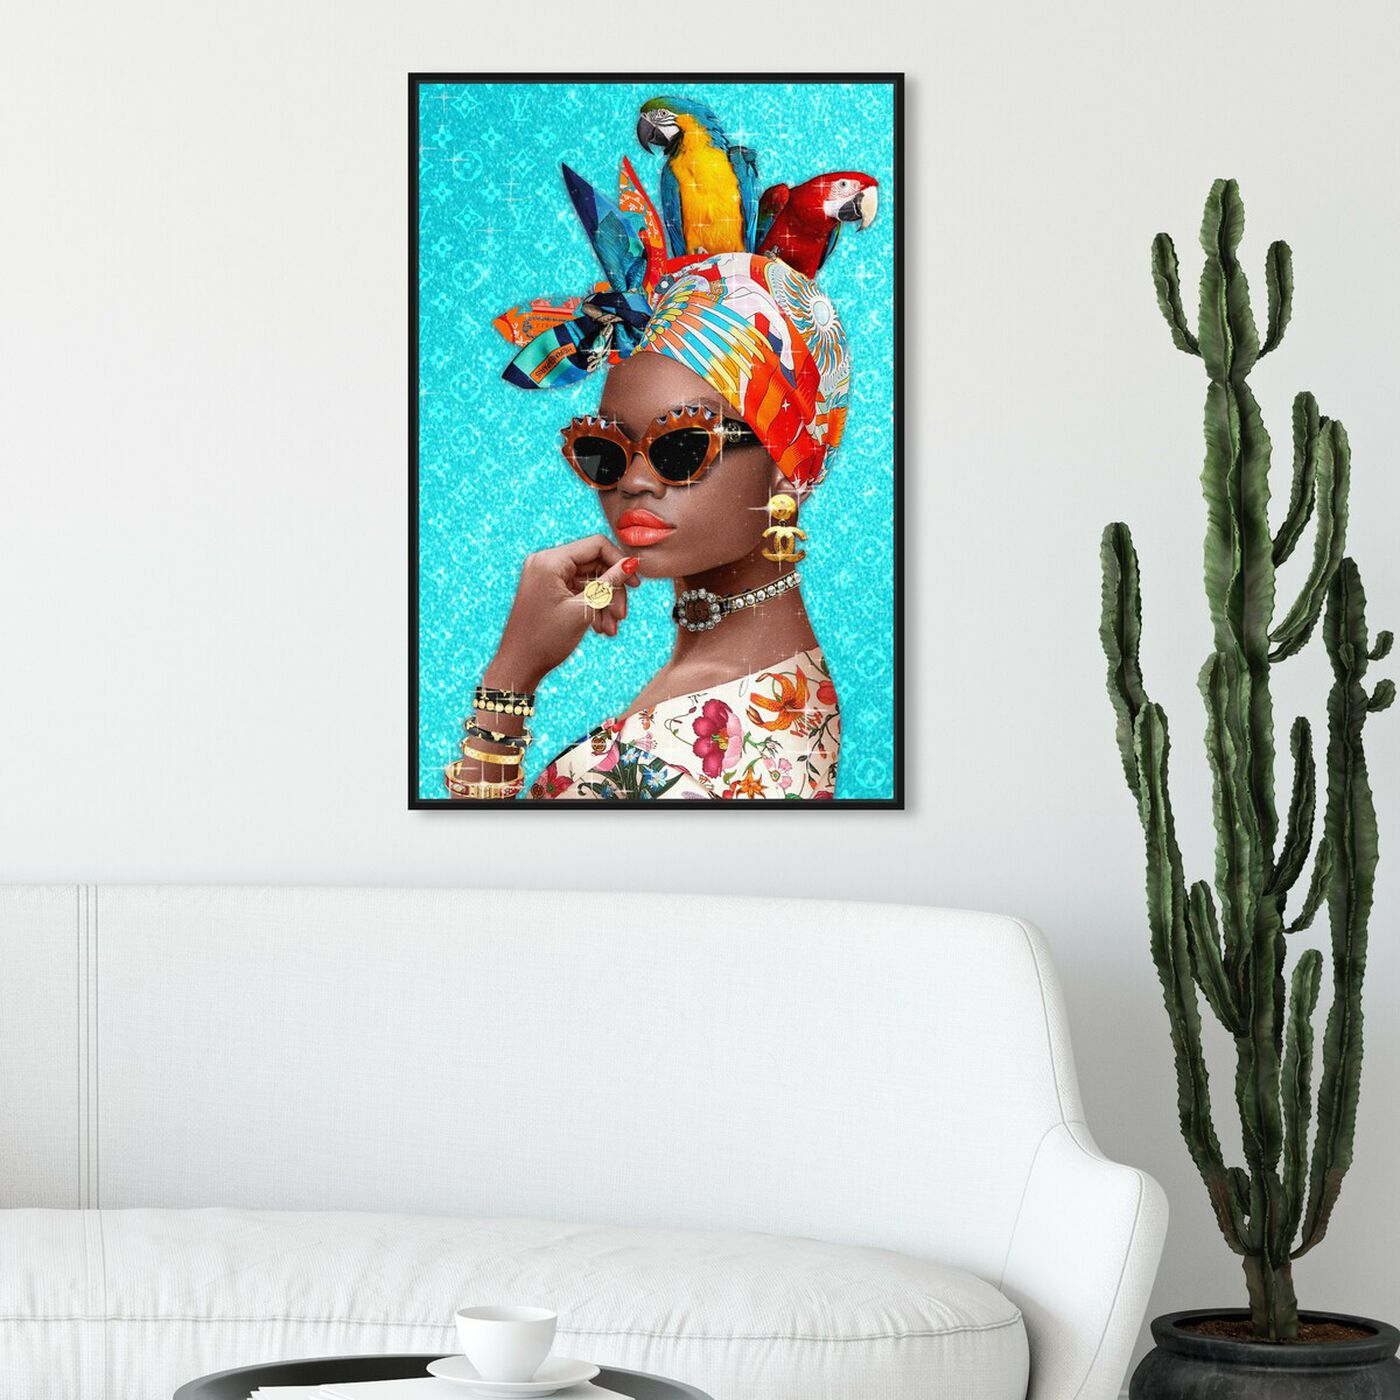 Hanging view of I see you featuring fashion and glam and portraits art.